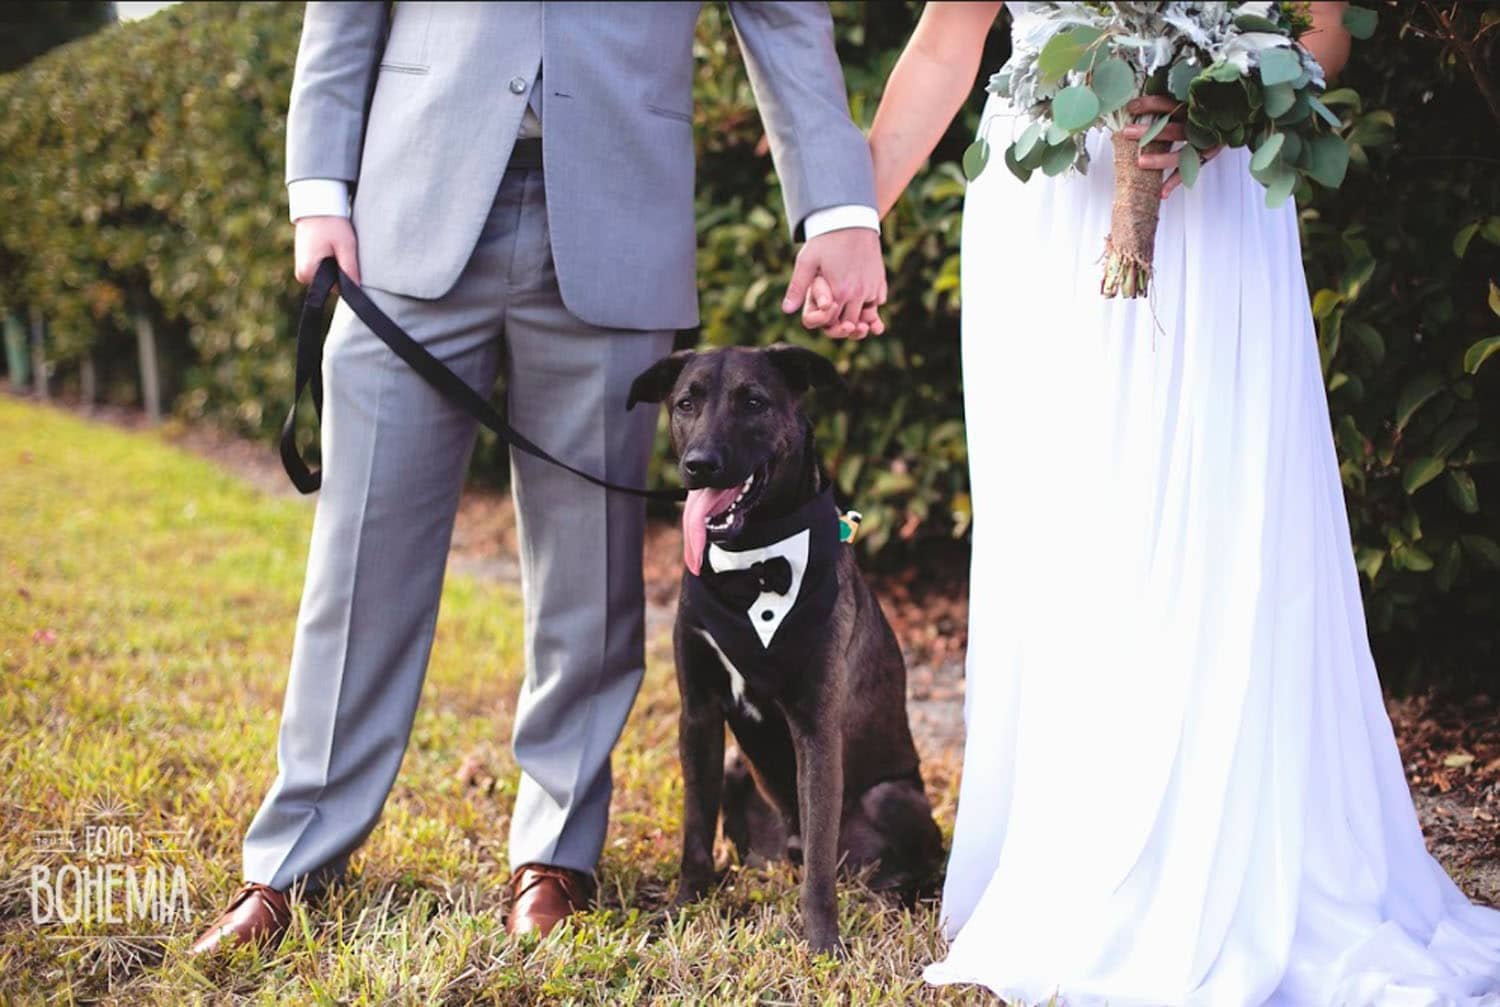 FairyTail Pet Care - newlyweds hold hands with dog between them